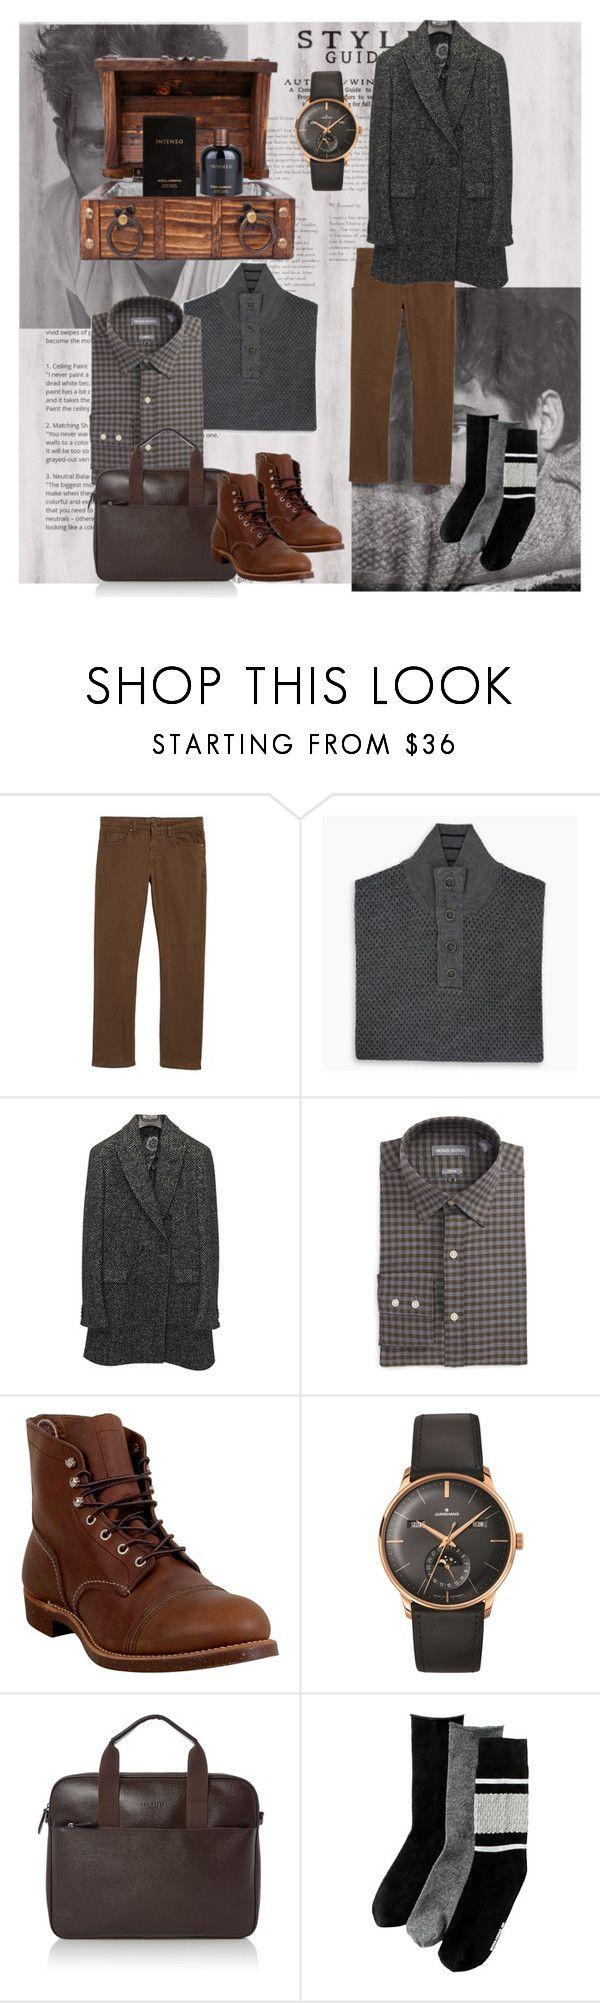 """Intenso"" by wave-babe ❤ liked on Polyvore featuring 34 Heritage, Dapper Fox, Etro, Michael Bastian, Red Wing, Longines, Ted Baker, Richer Poorer, Dolce&Gabbana and men's fashion"